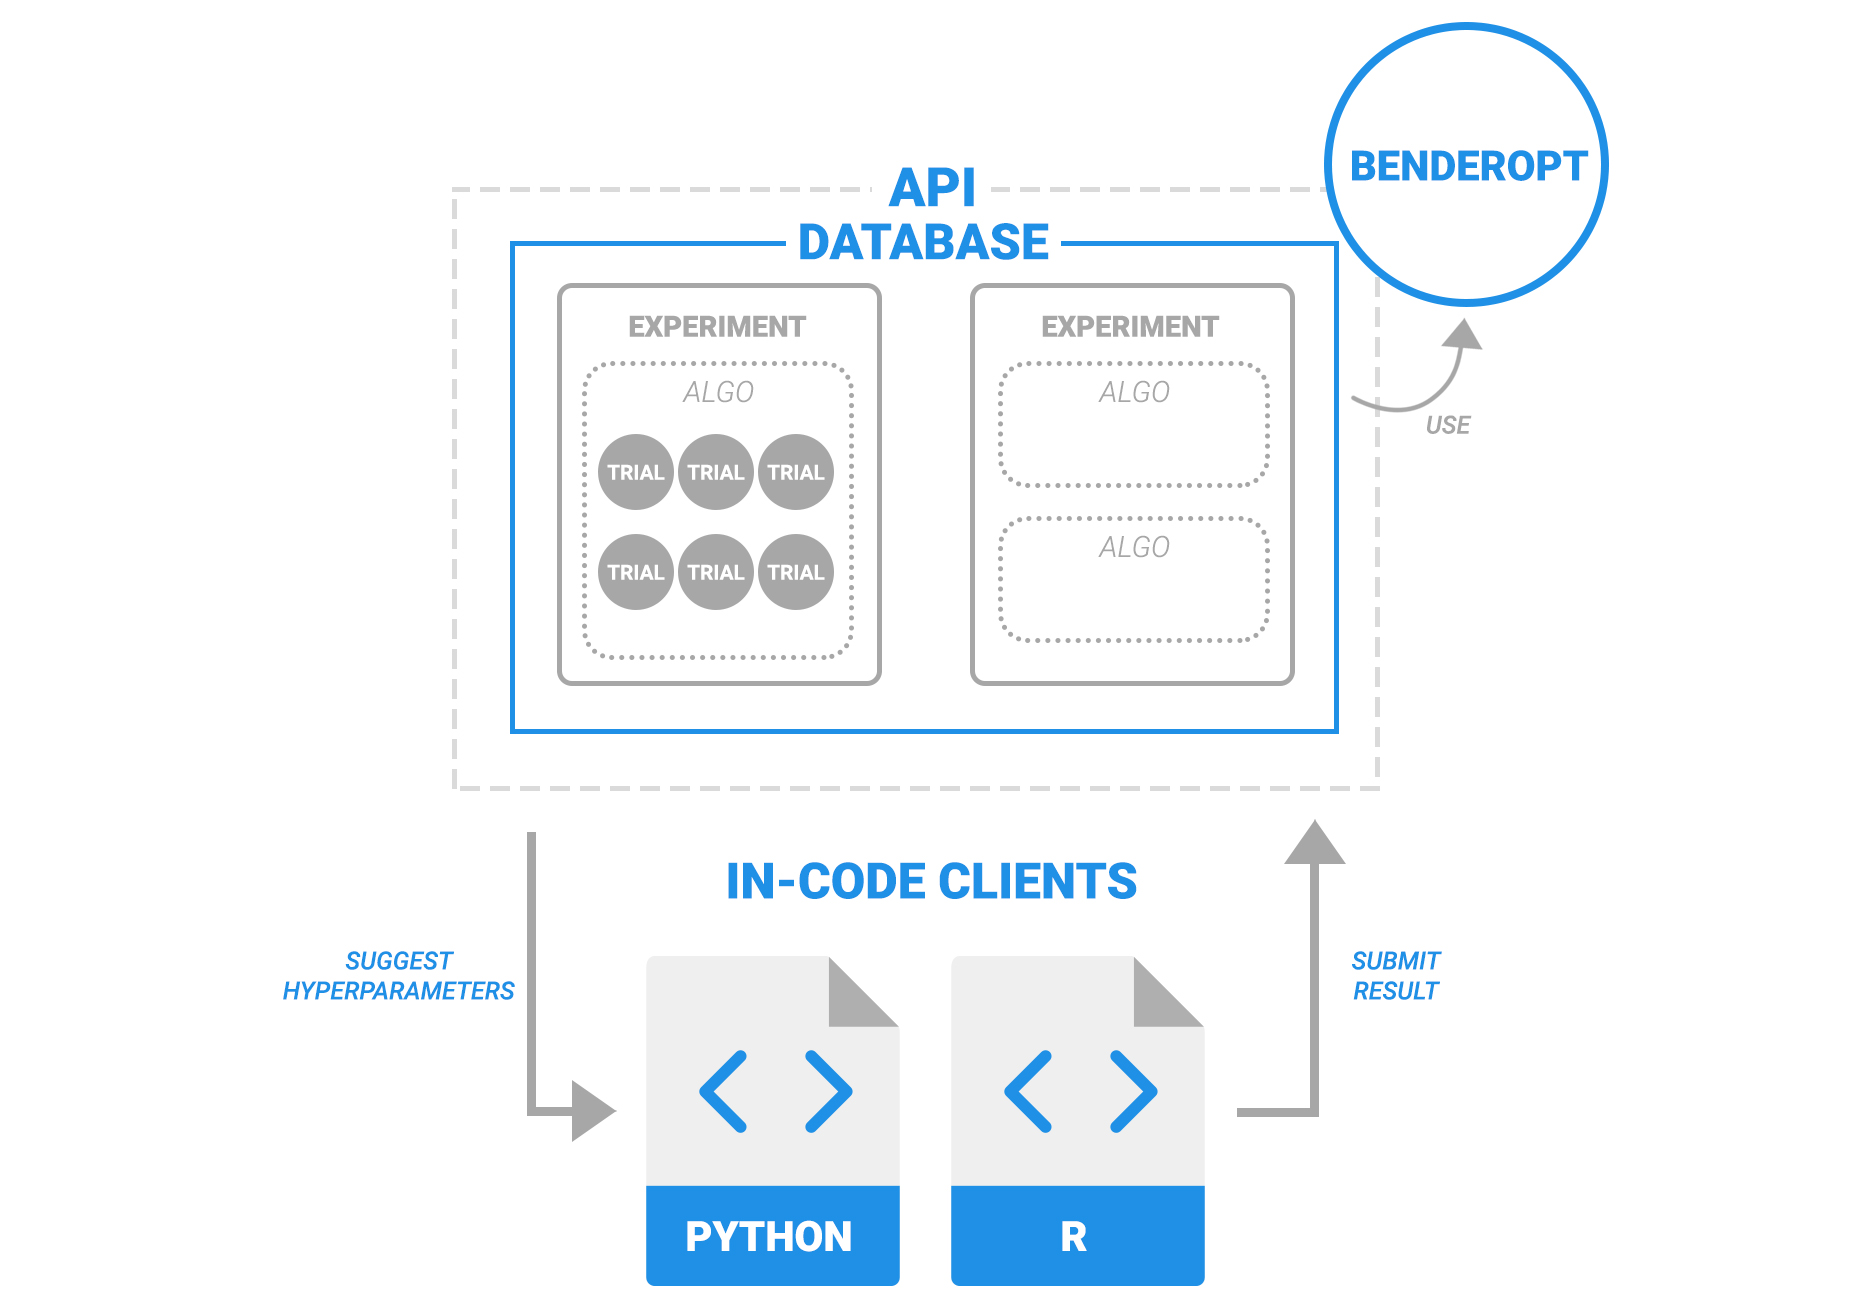 API - OTHER CLIENTS